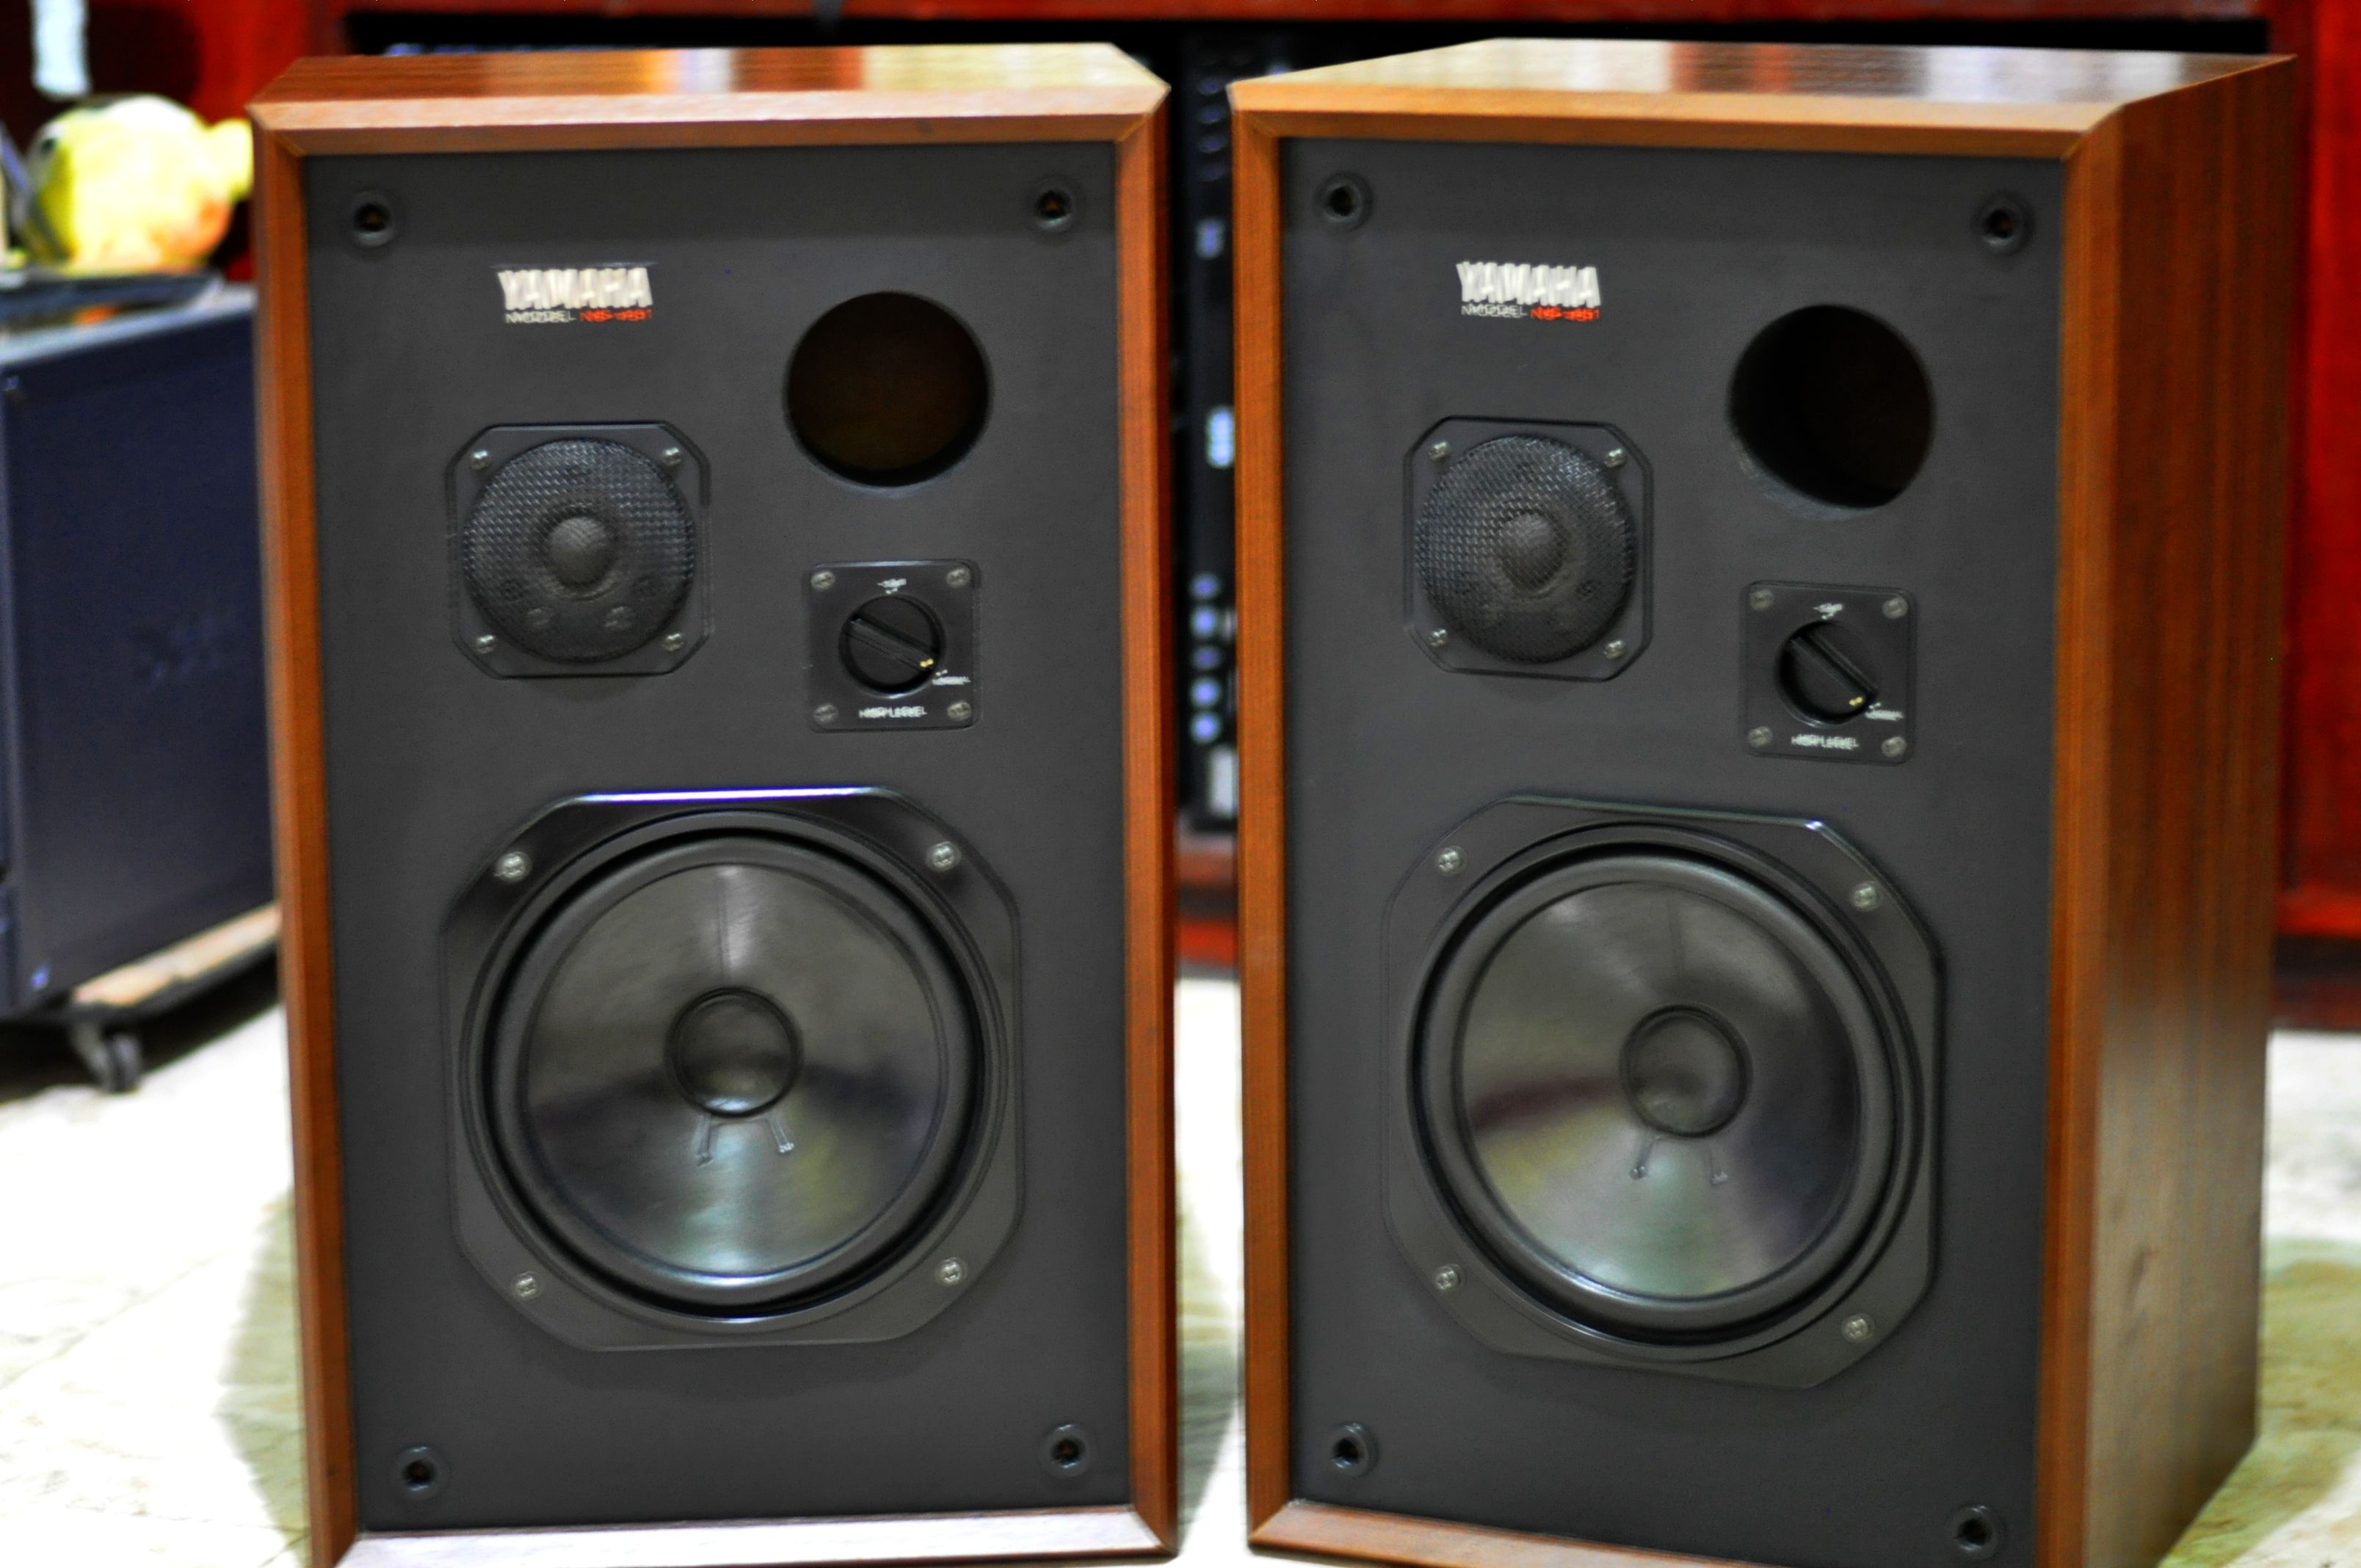 yamaha speakers. yamaha speaker yamaha speakers